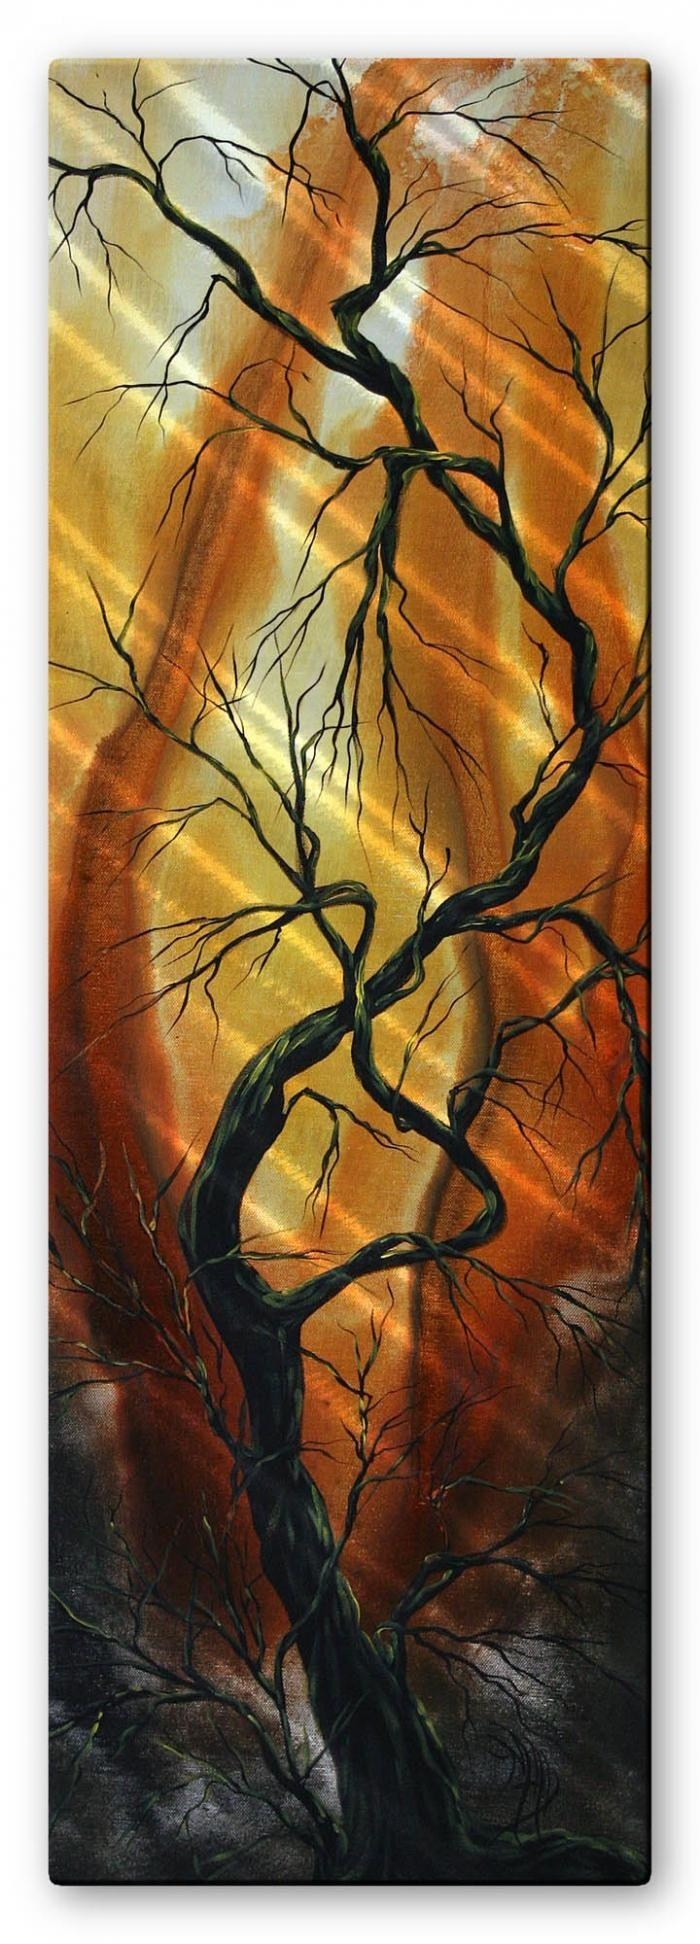 65 Best Artist Megan Duncanson Images On Pinterest | Abstract Art Intended For Megan Duncanson Metal Wall Art (View 5 of 20)